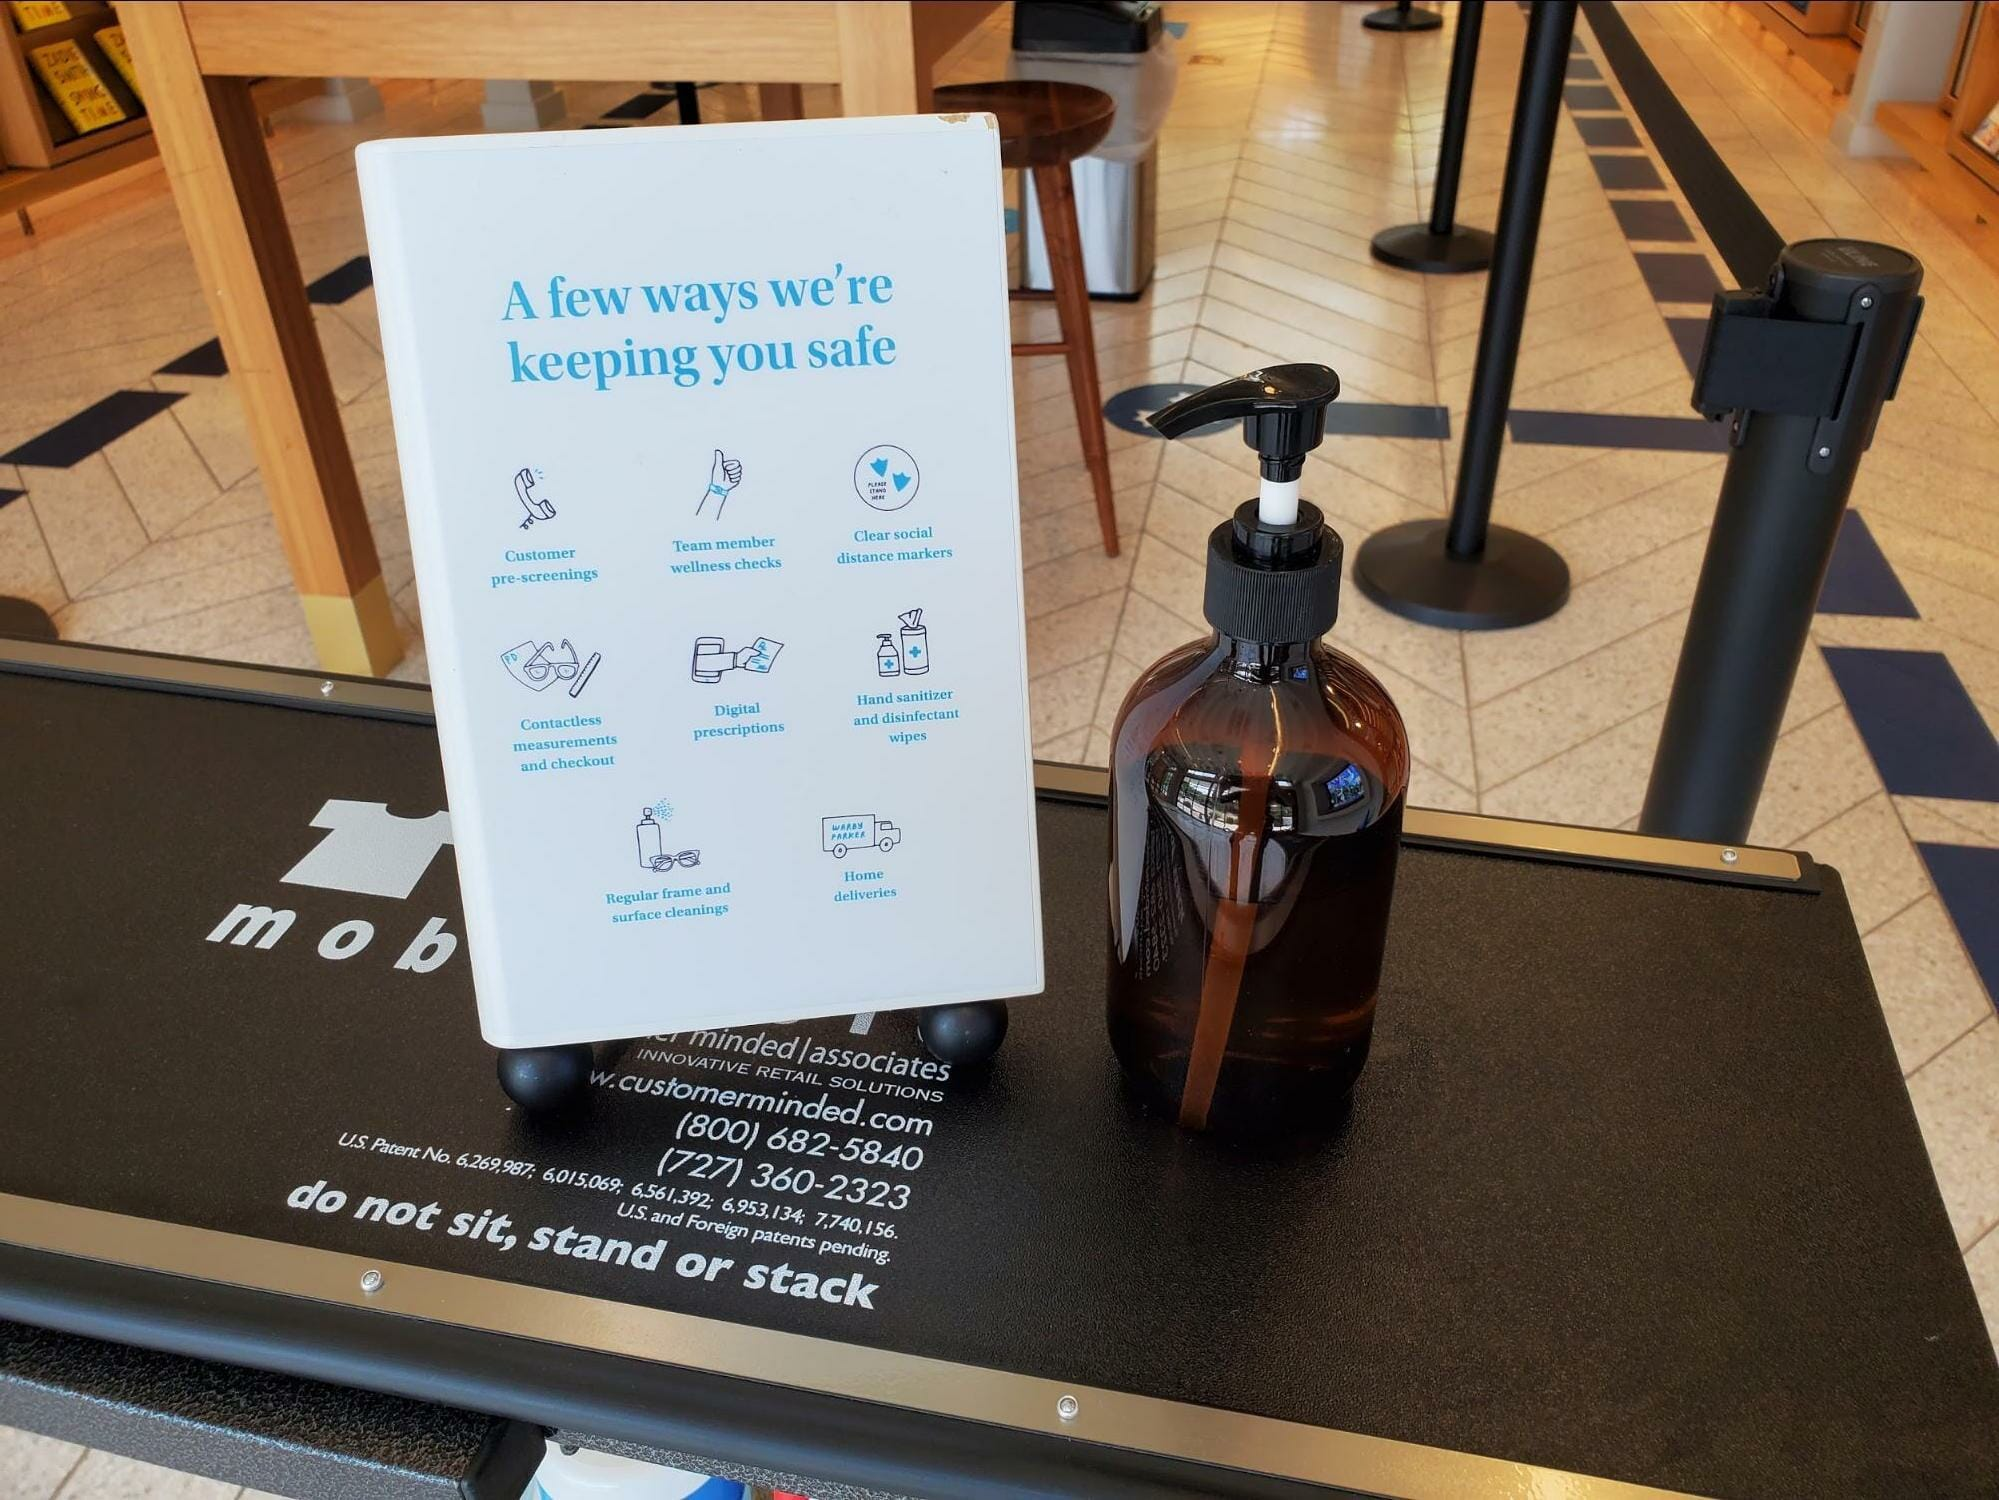 Warby Parker has reopened some of its stores following their COVID-19 closures in March